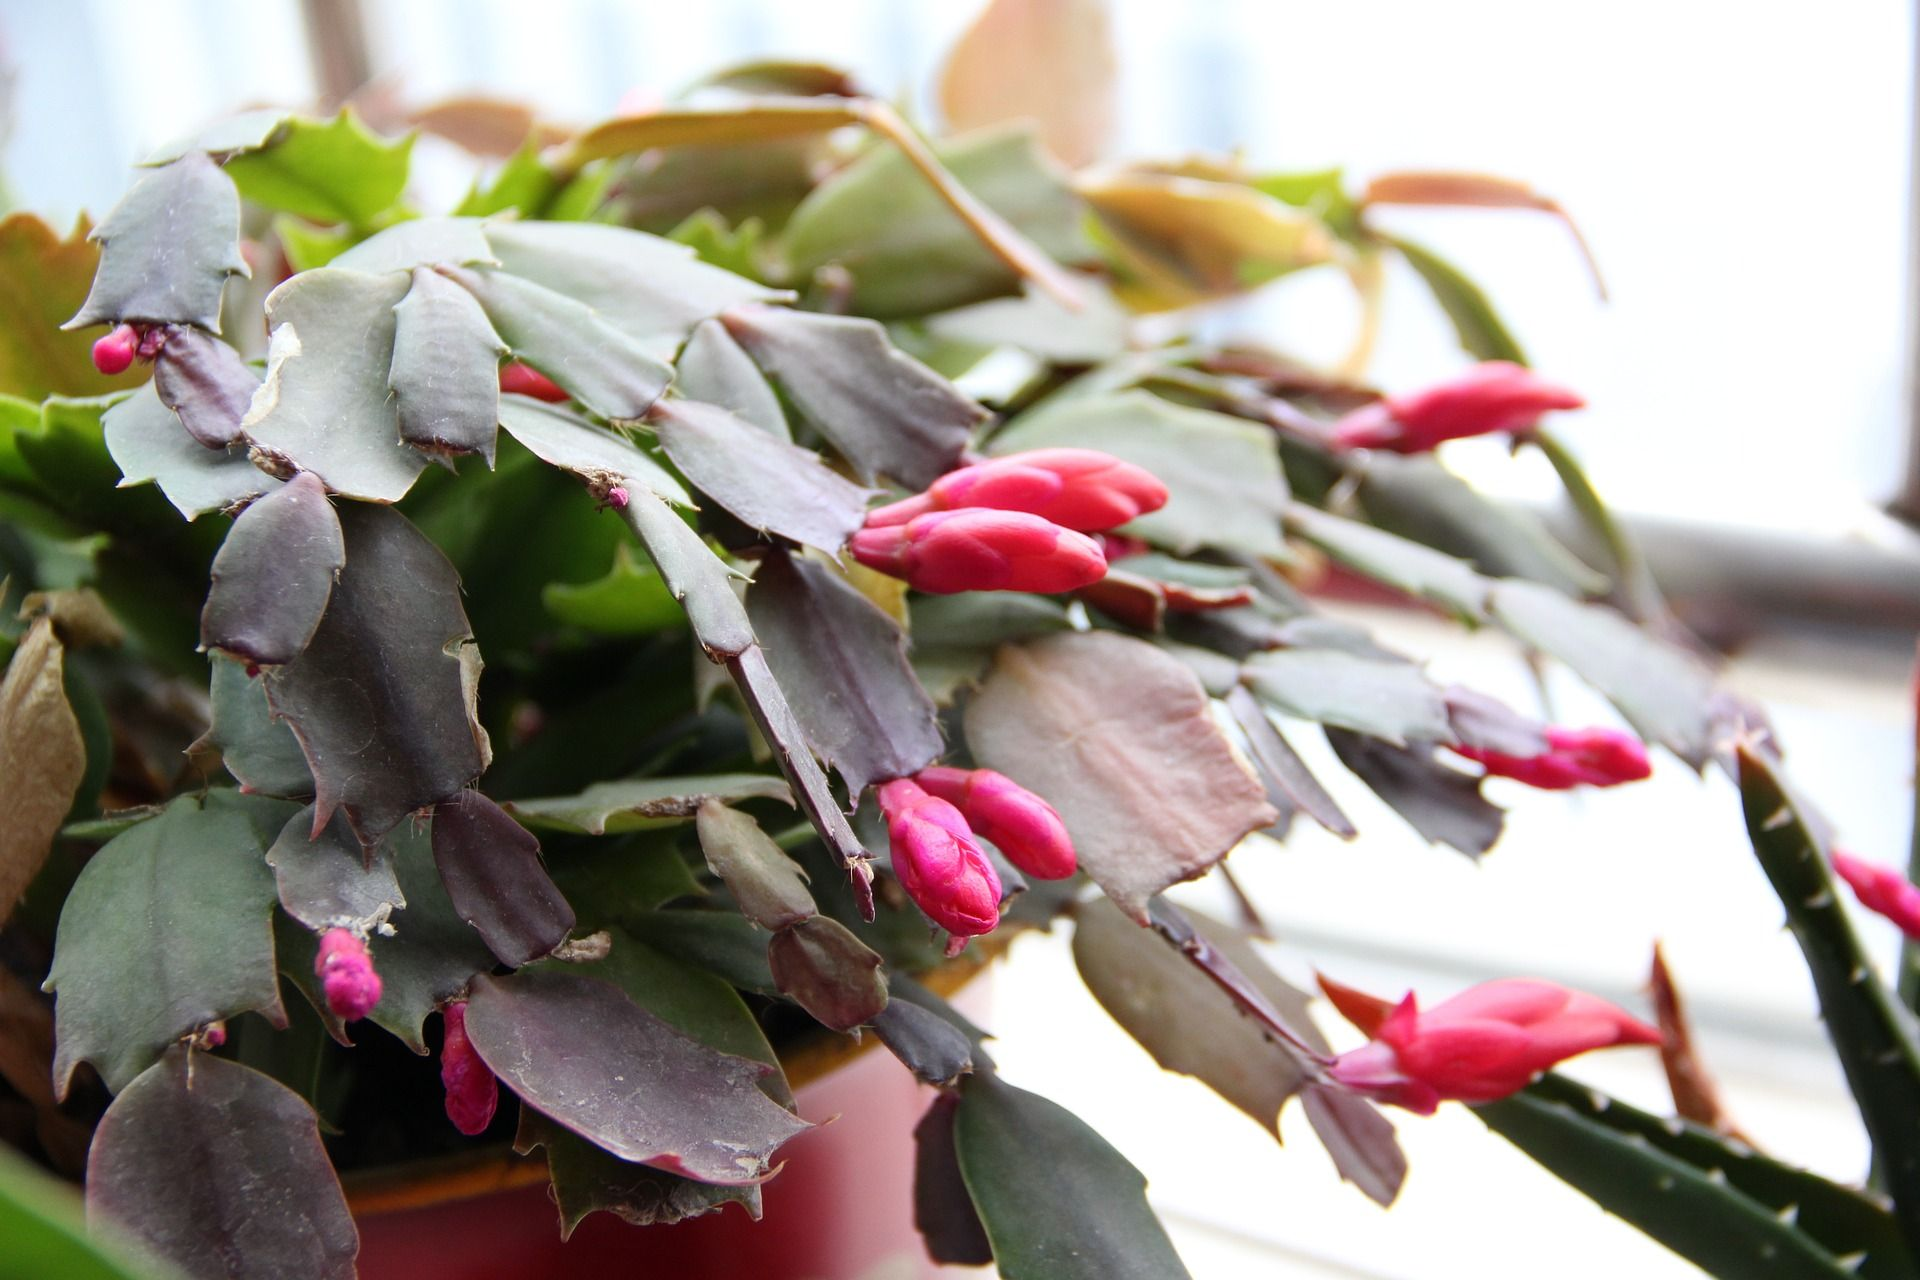 With just a little care, holiday houseplants can continue to thrive throughout the year. Knowing how to care for them helps to keep them beautiful.